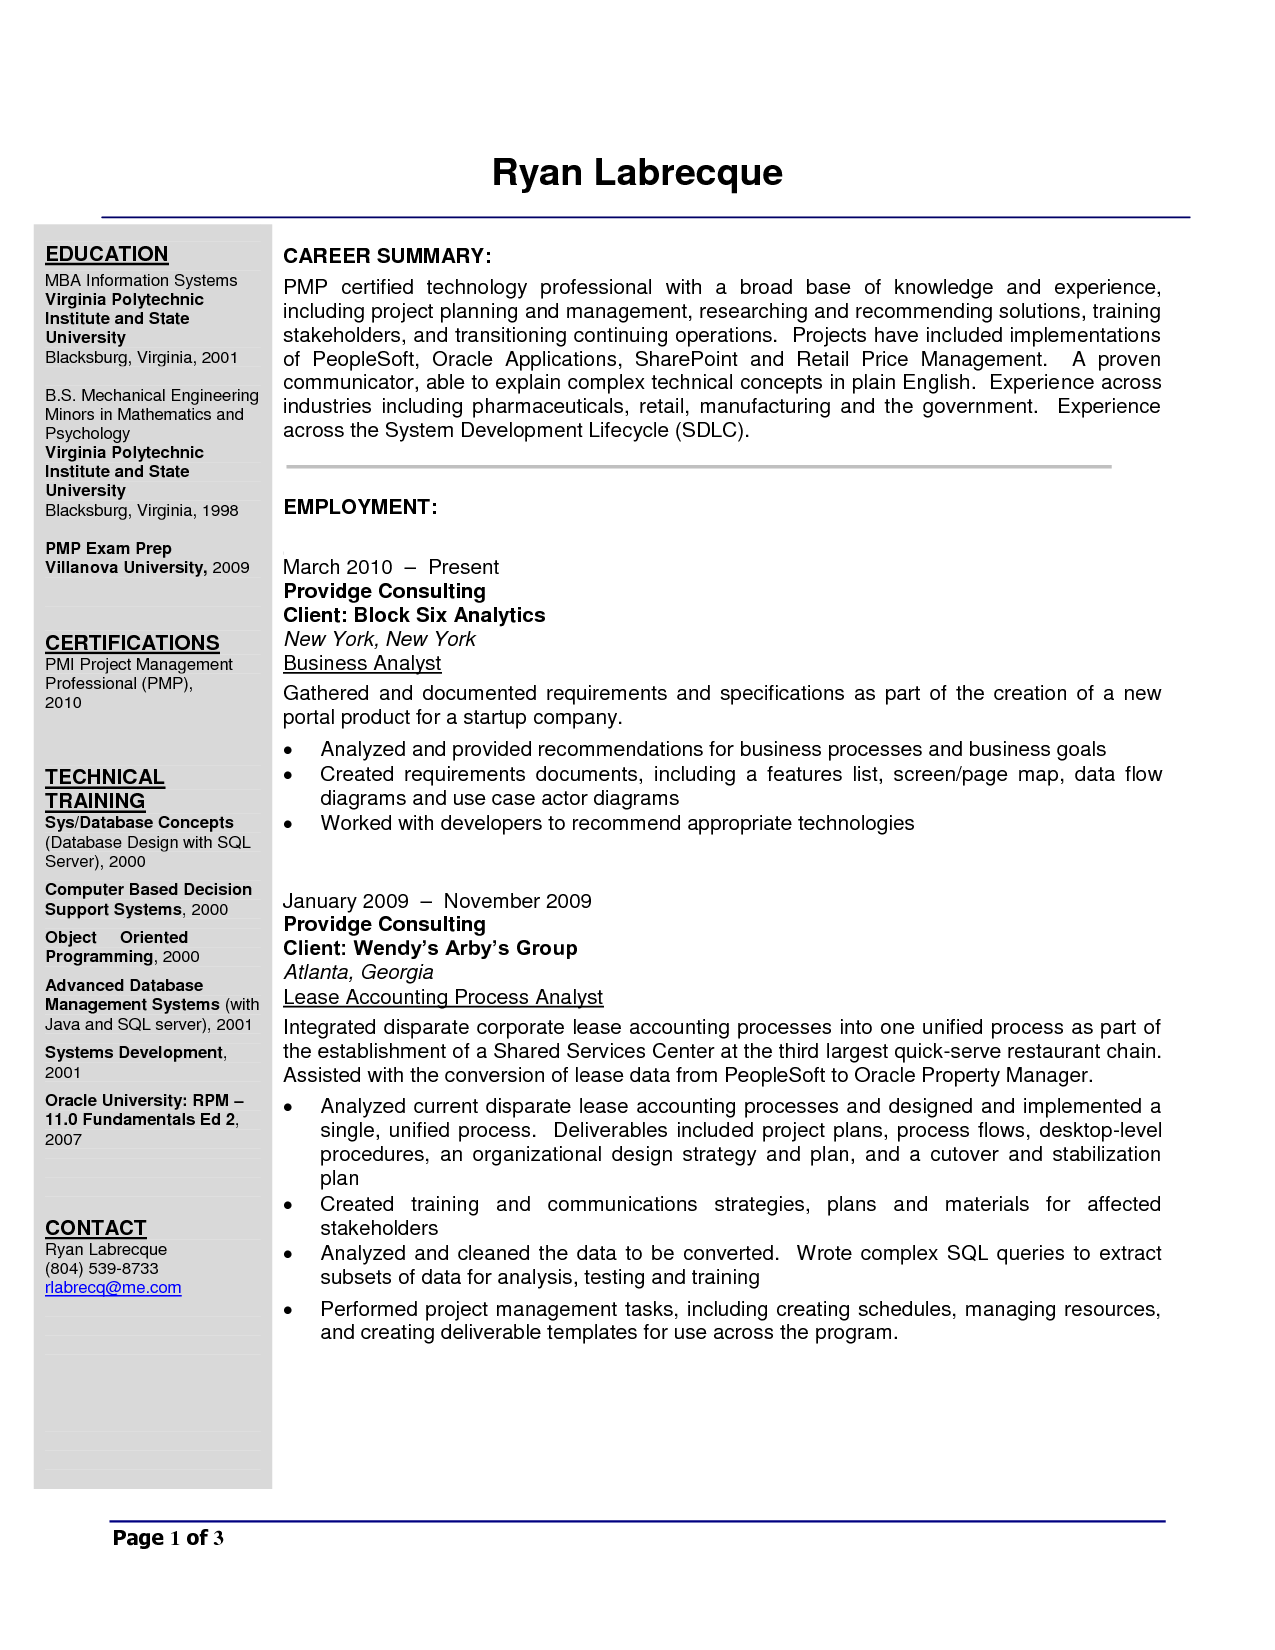 business analyst resume business analyst resume templates business analyst resume sample doc by ryan labrecque - Business Analyst Resume